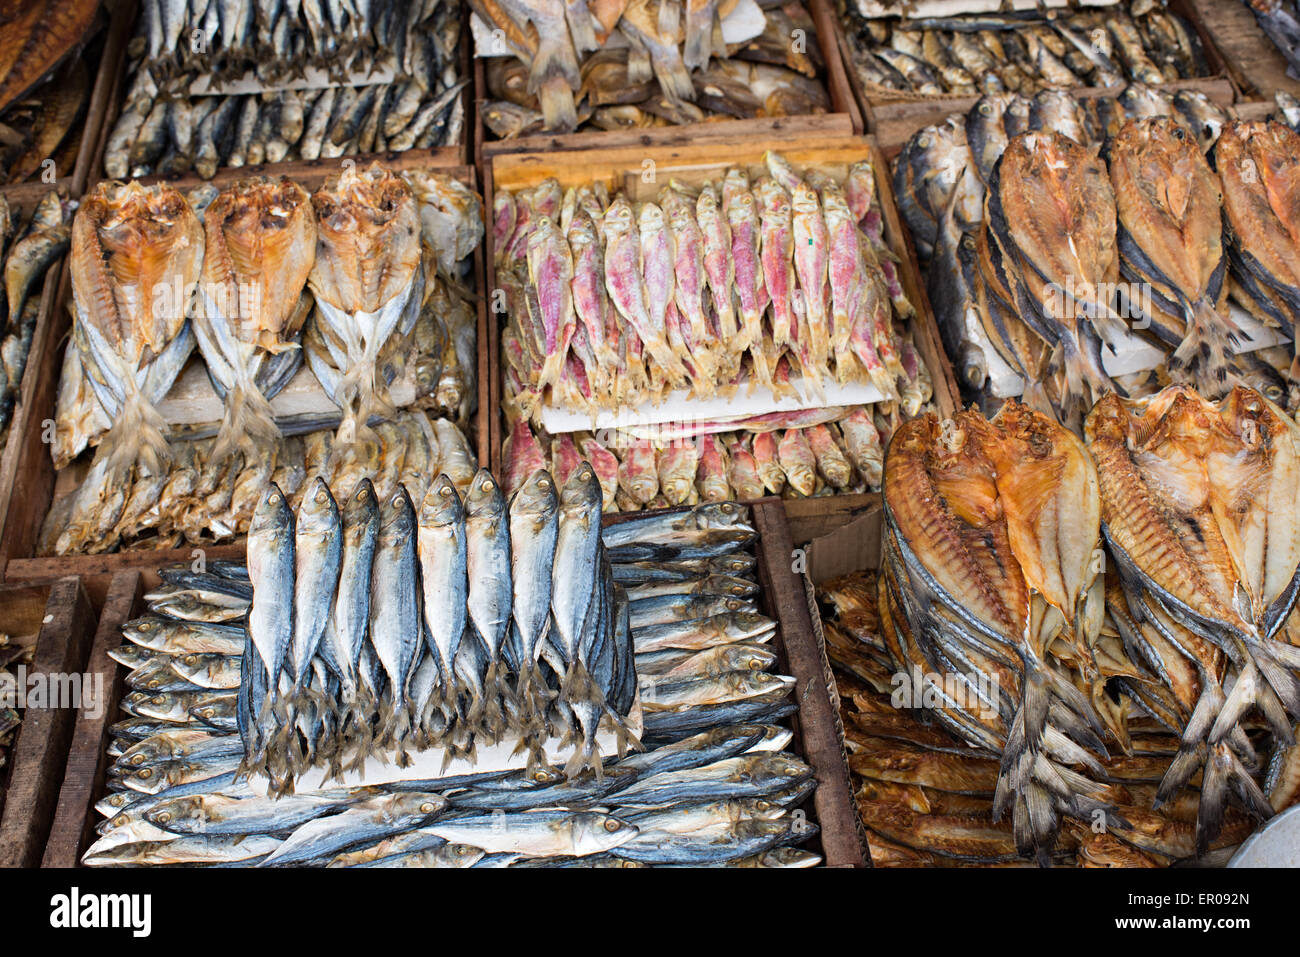 Fish Market Seafood Philippines Stock Photos & Fish Market Seafood